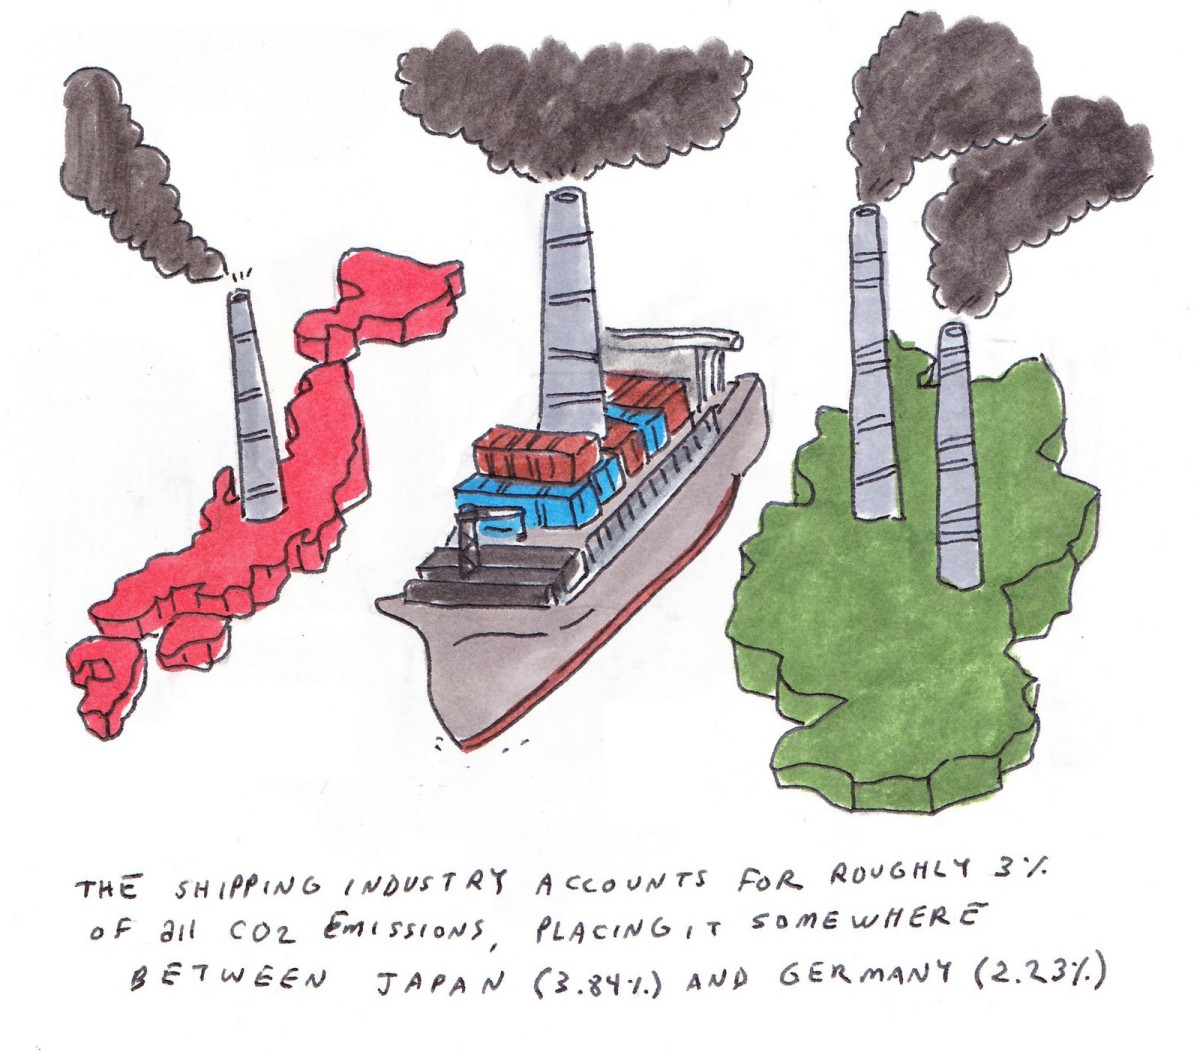 If the shipping industry were a country, it would be the sixth-largest emitter of carbon dioxide in the world.